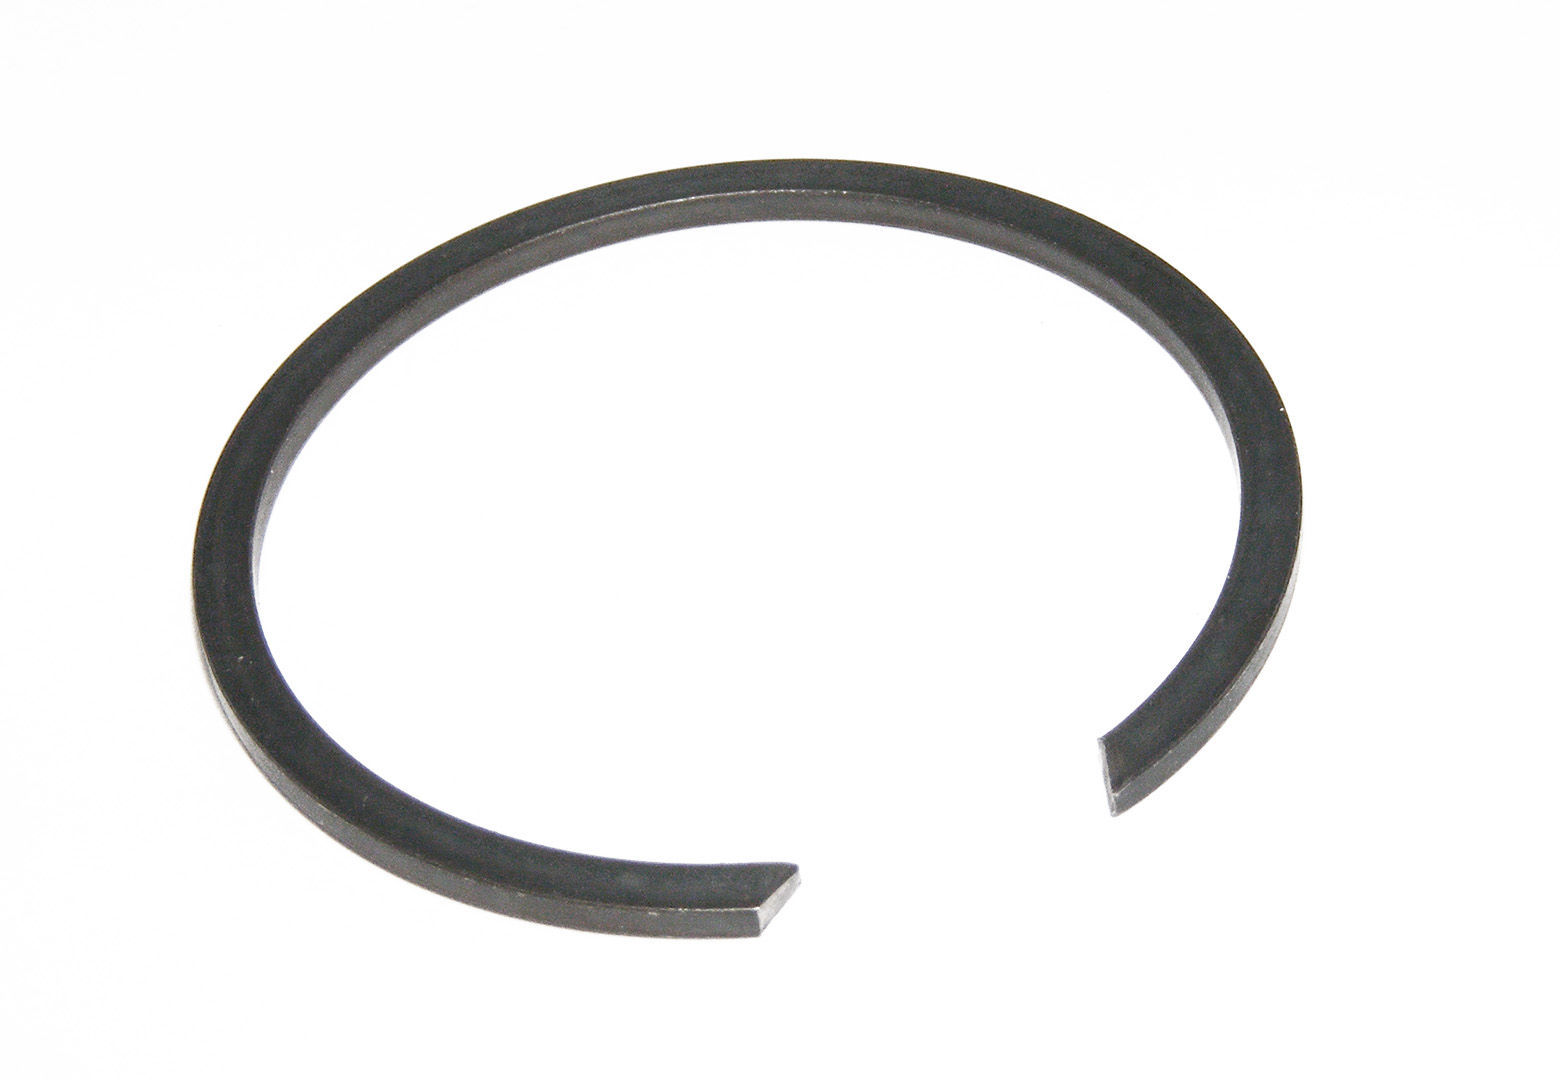 How To Use Retaining Rings